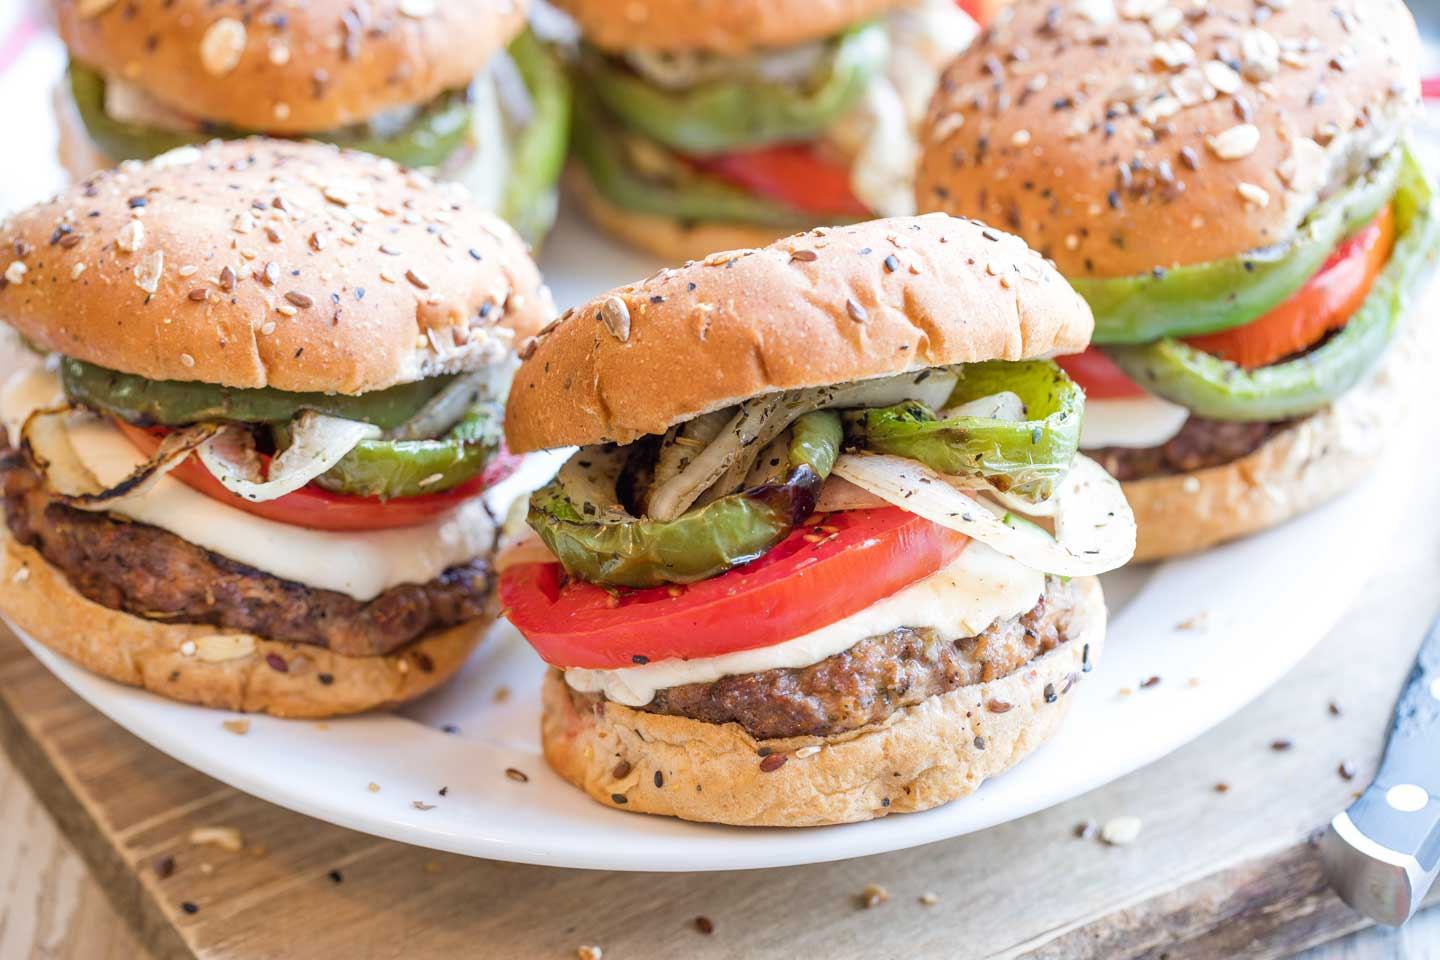 Five finished, grilled hamburgers piled with toppings on a large white serving plate.